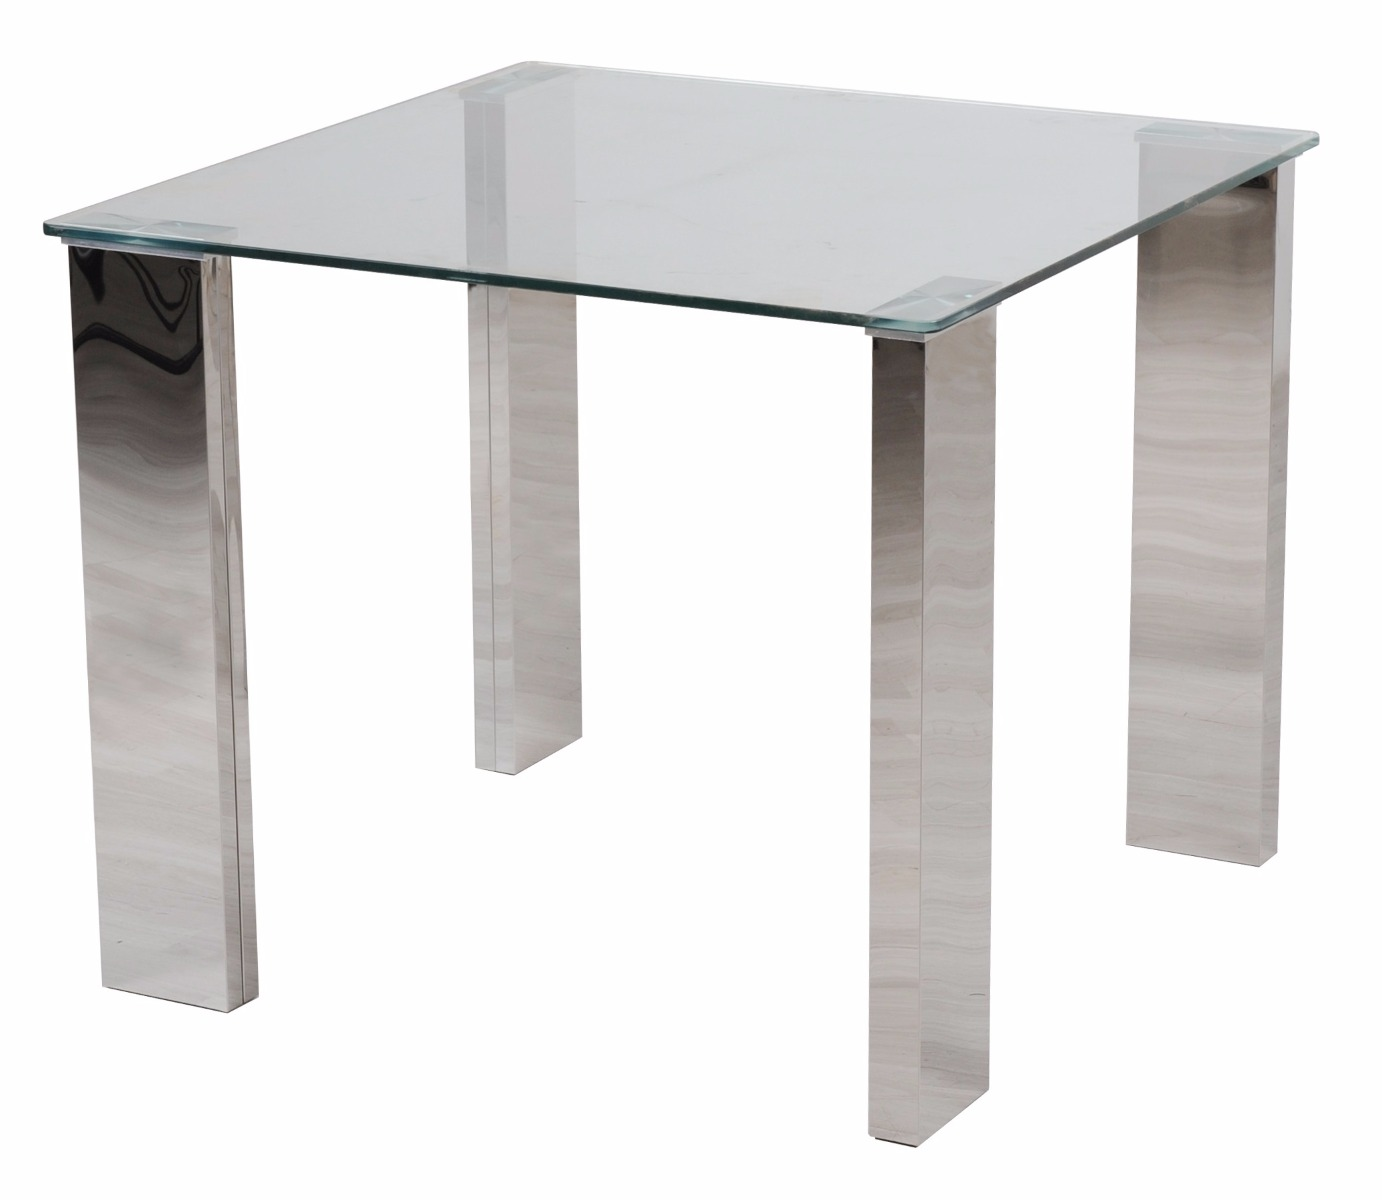 https://www.firstfurniture.co.uk/pub/media/catalog/product/d/o/dokota_dining_table_sq_5.jpg